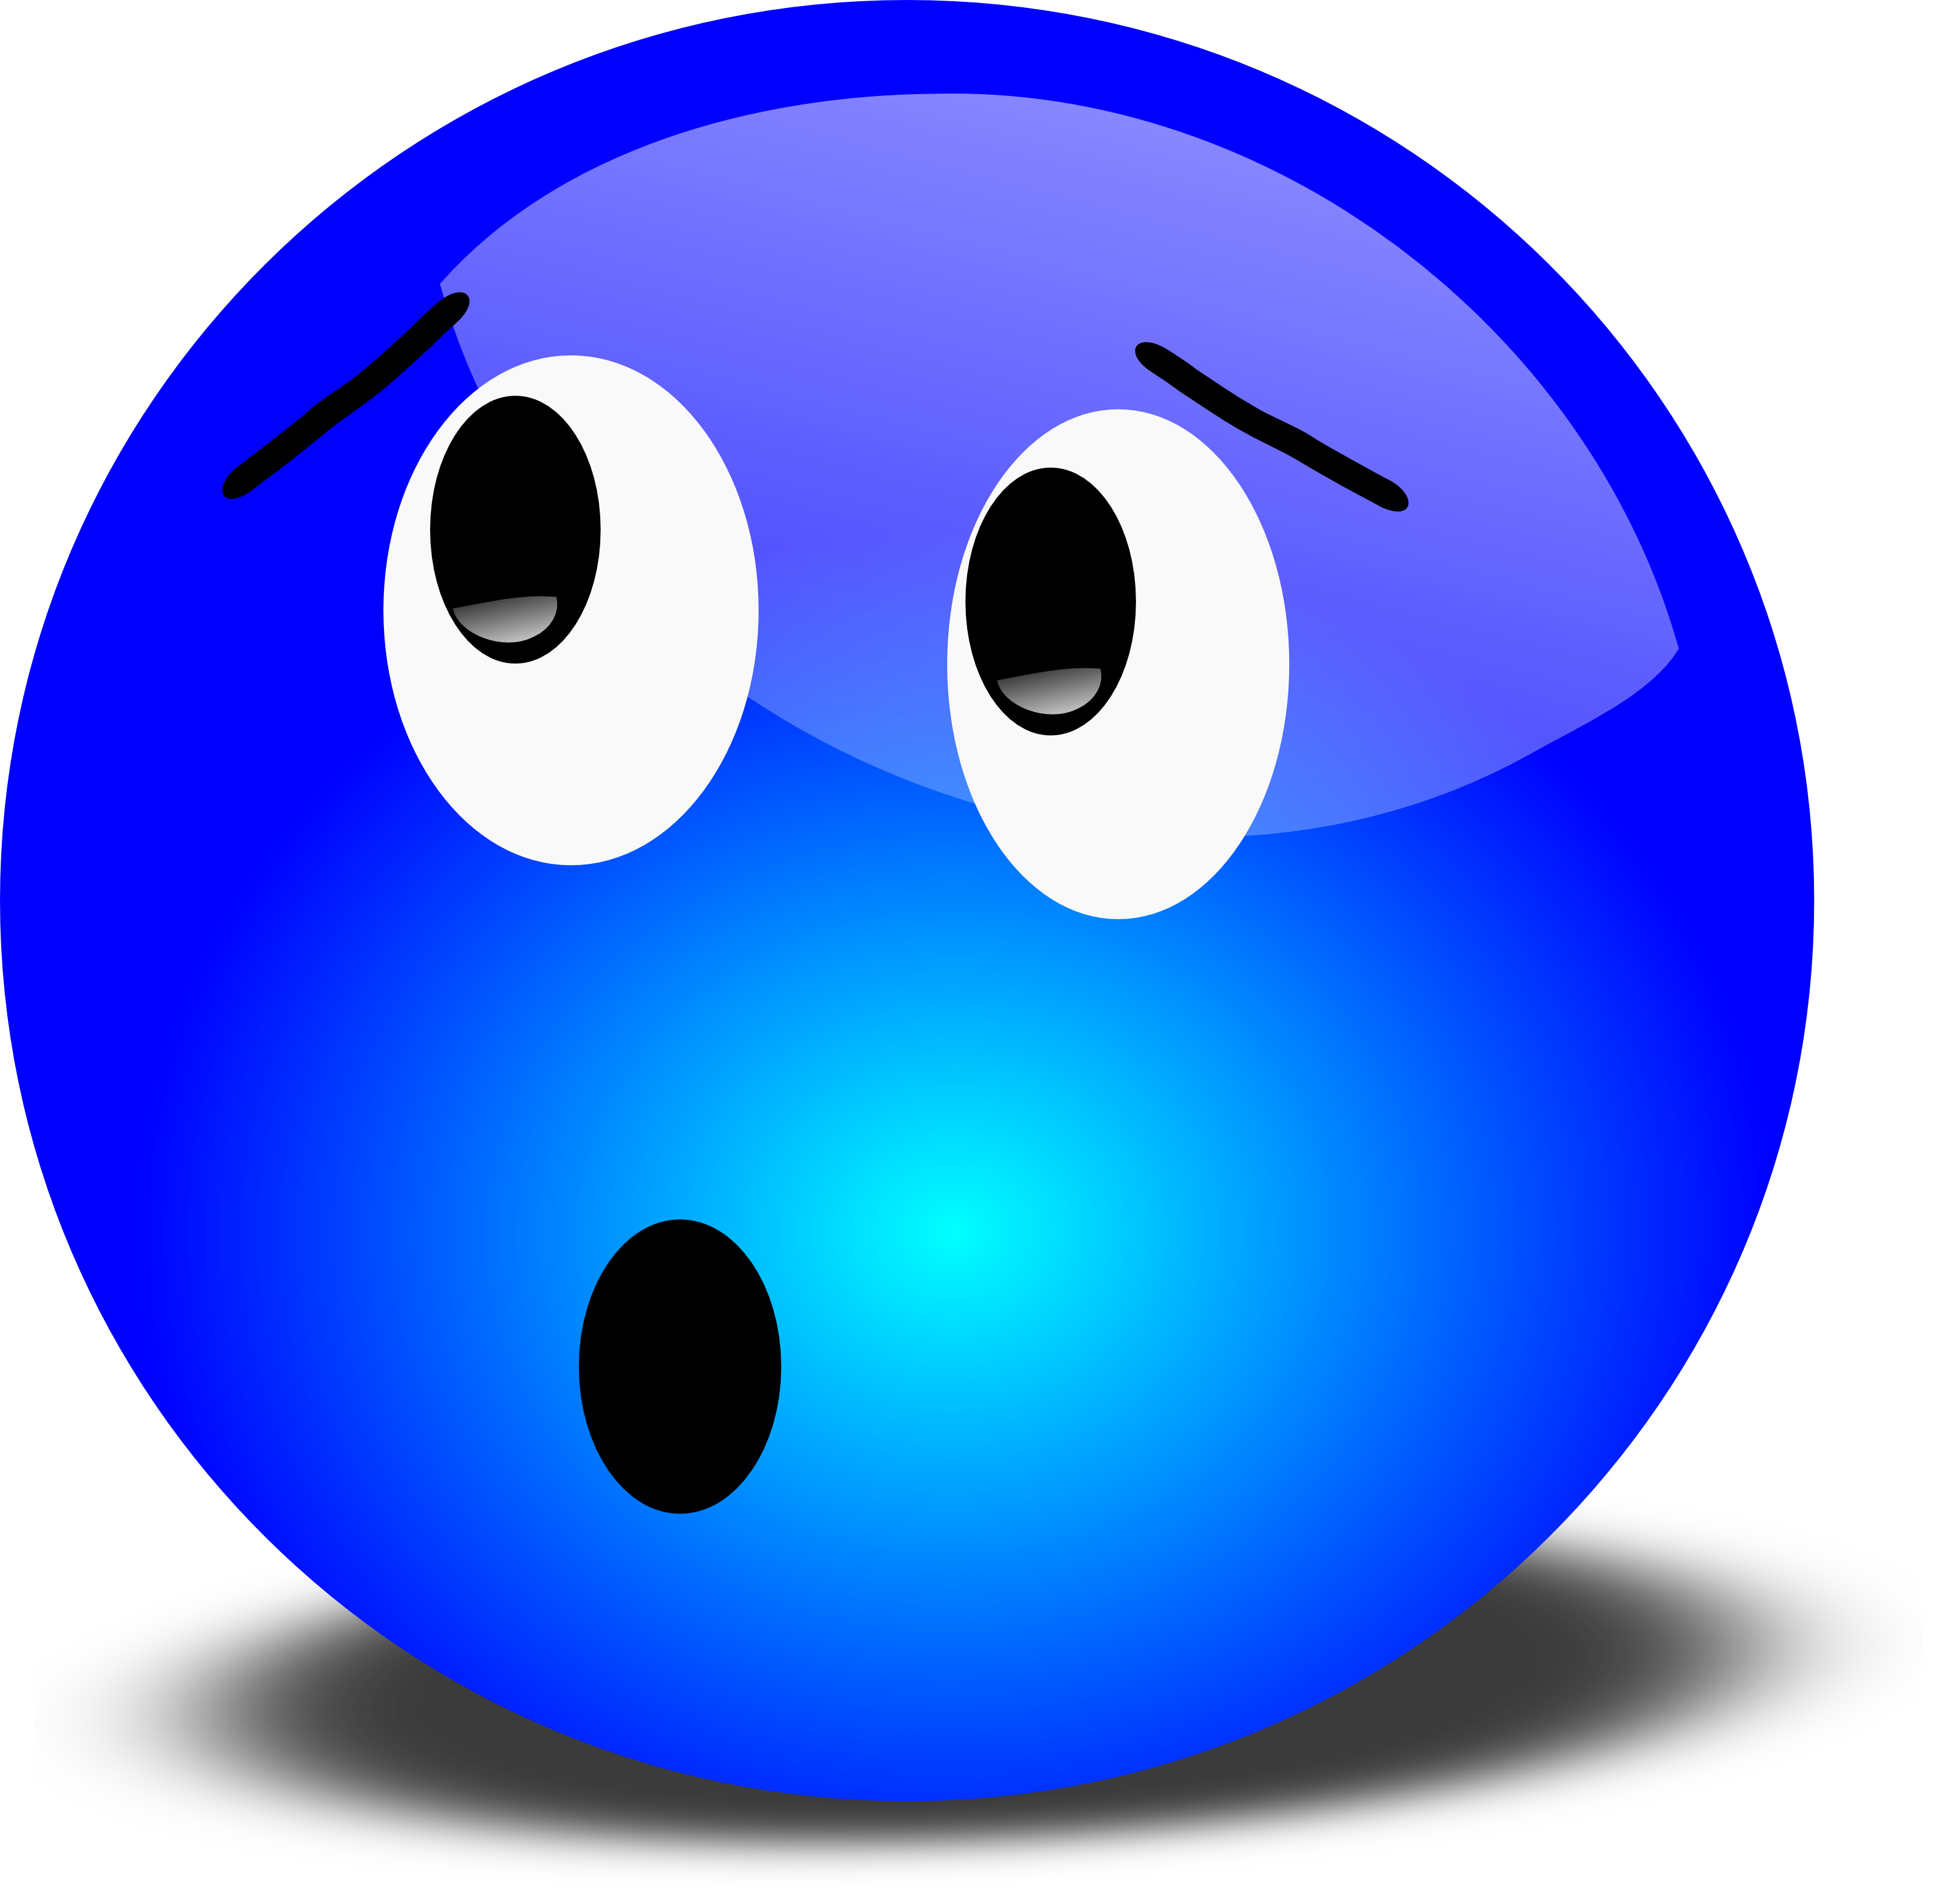 3200x3134 Free 3d Worried Smiley Face Clipart Illustration